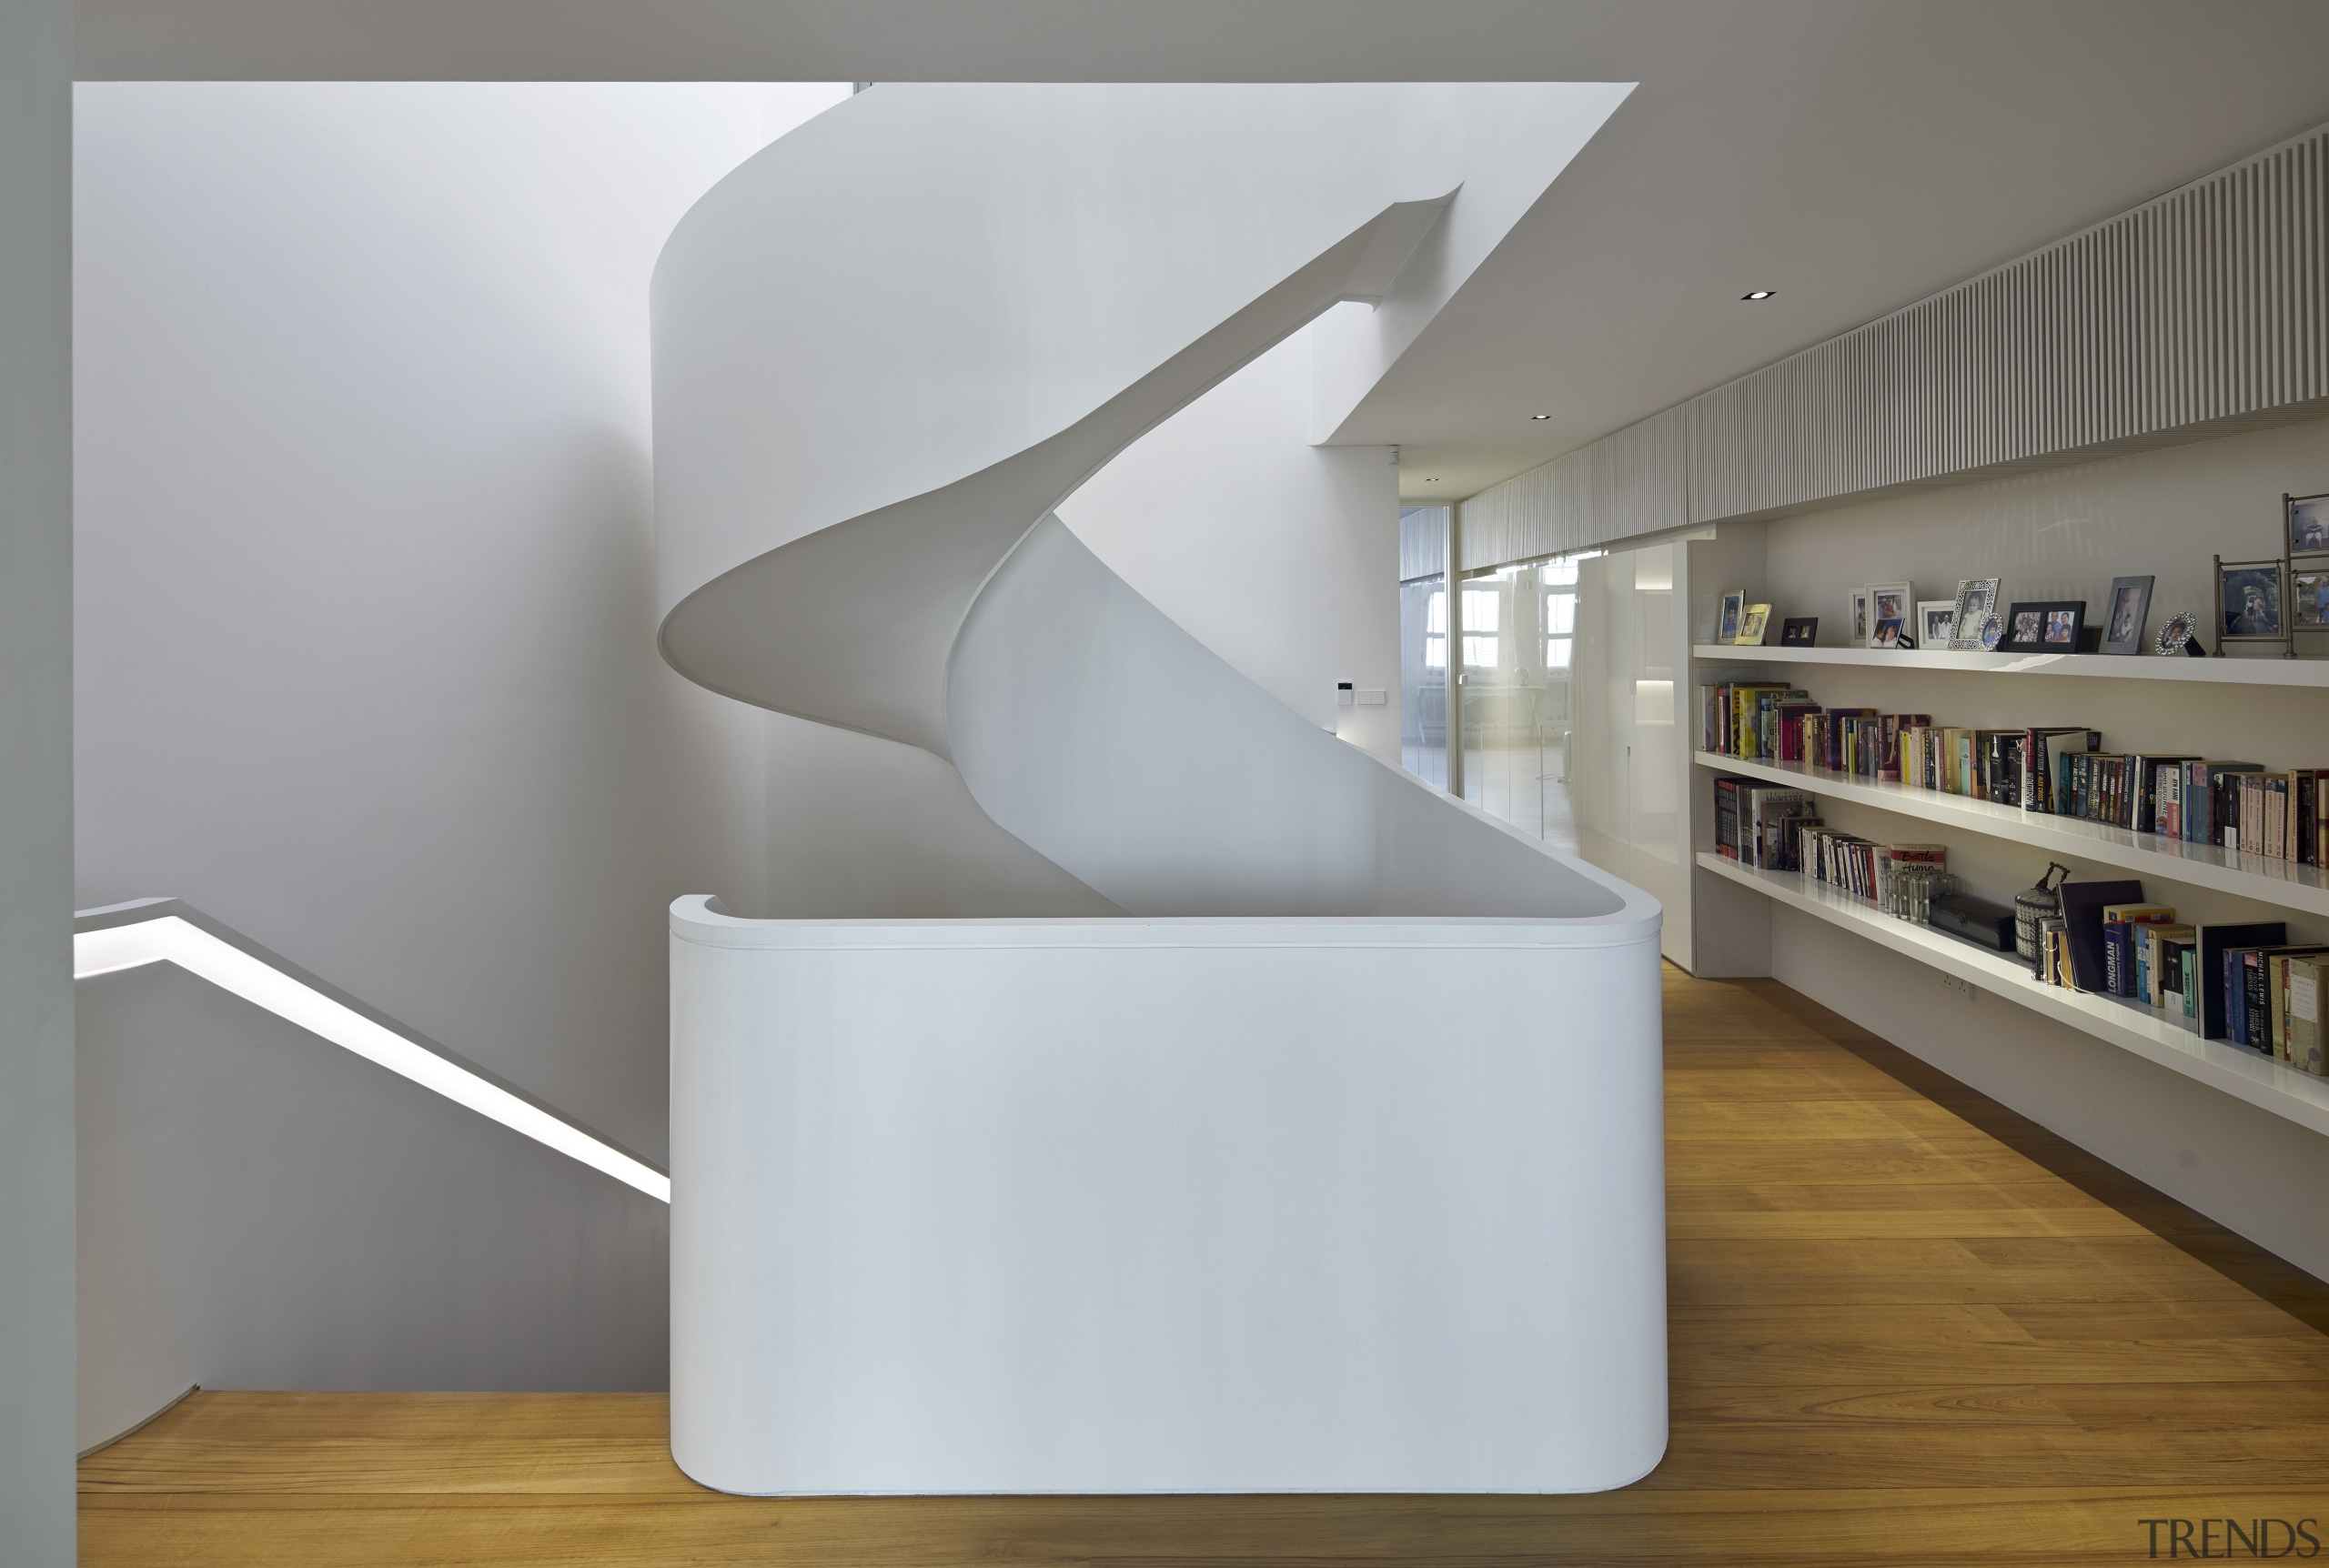 A lantern roof and skylights above this stairwell architecture, furniture, interior design, product design, shelf, shelving, gray